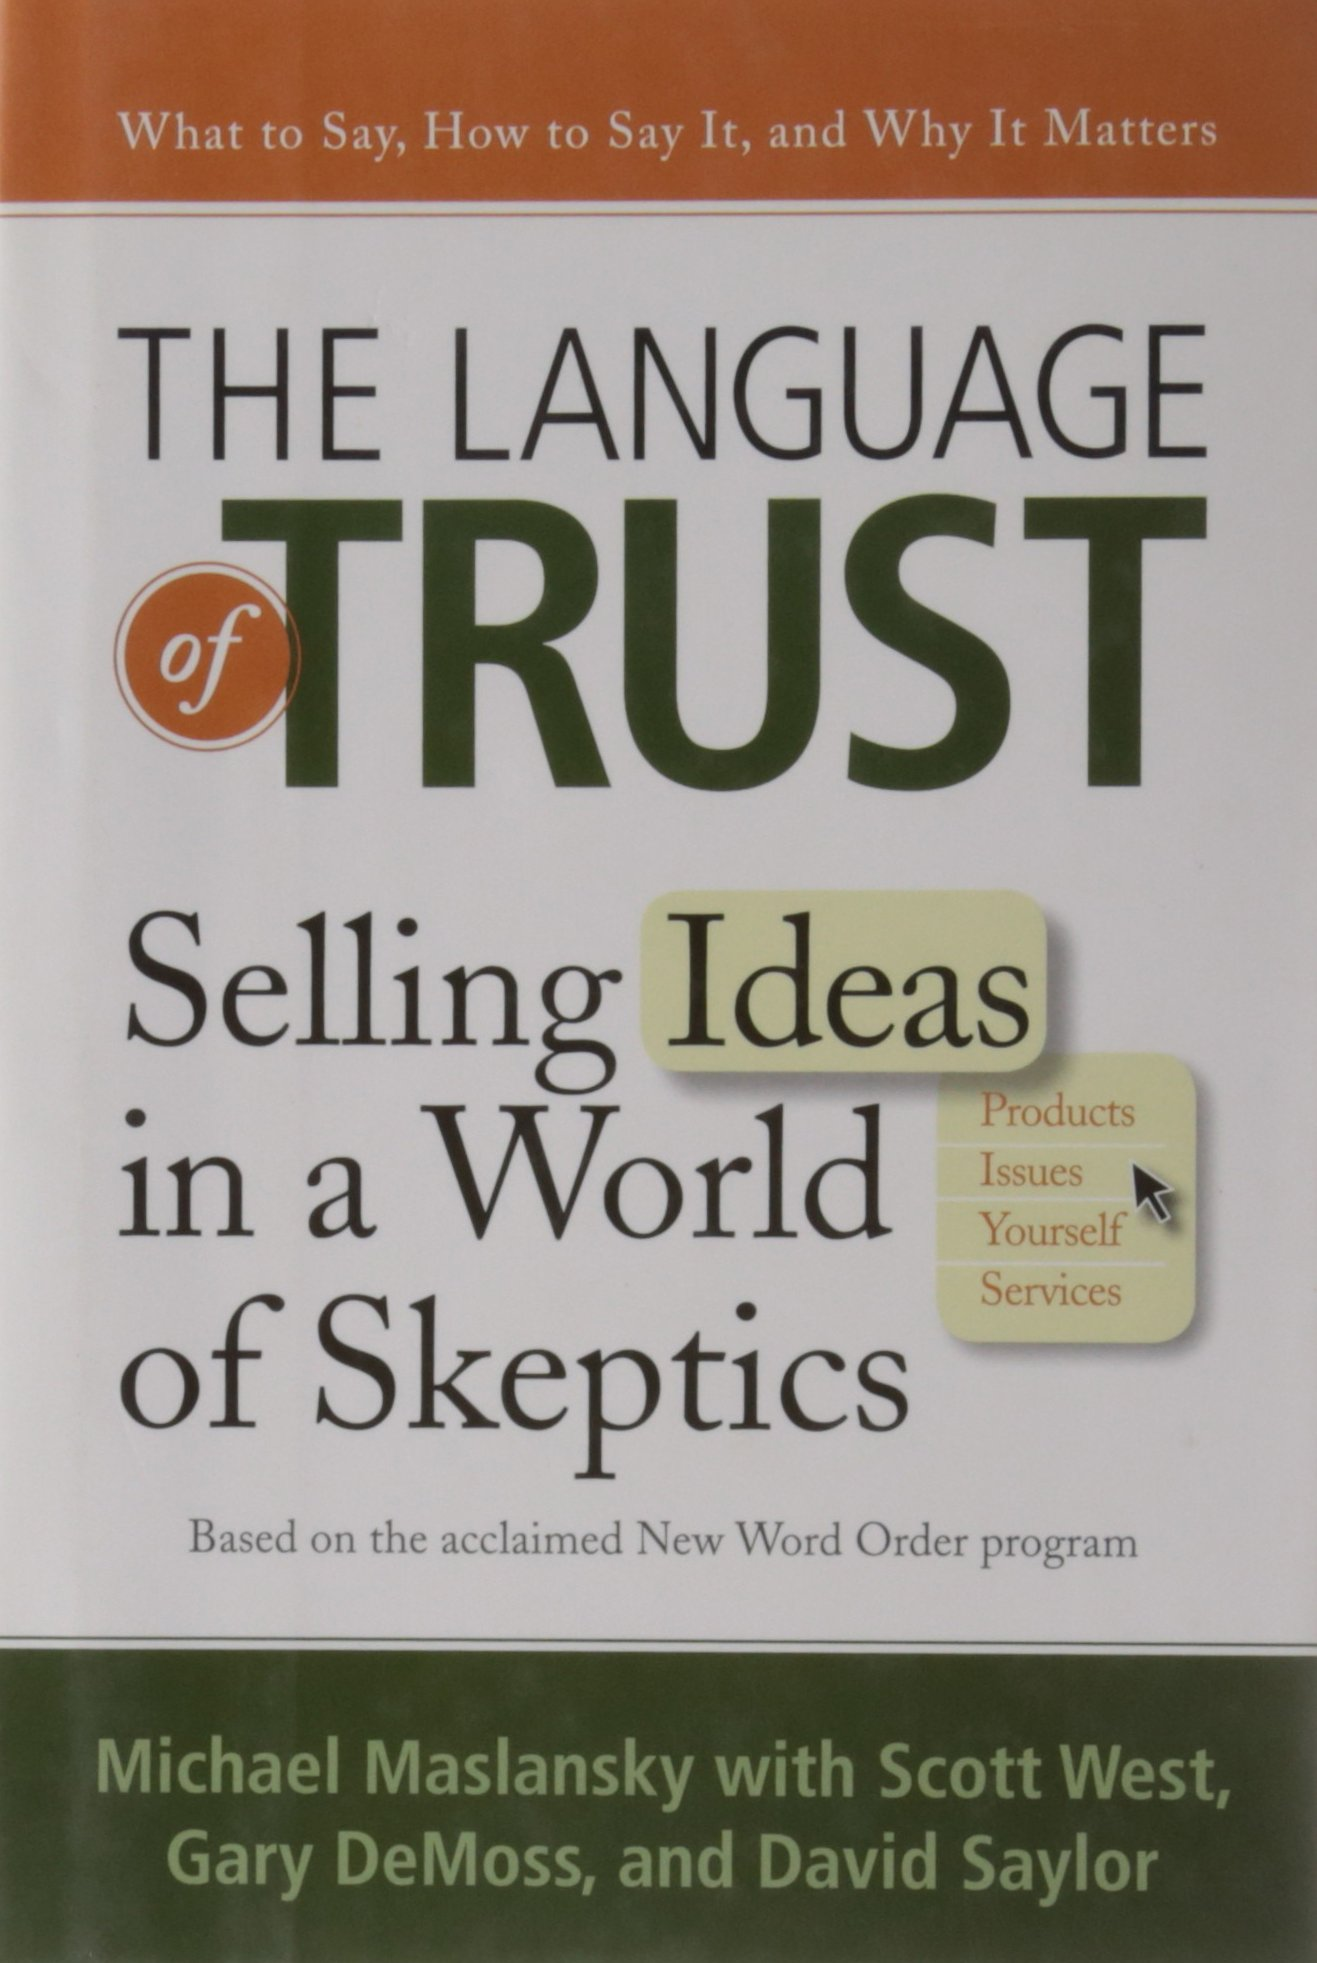 The Language of Trust: Selling Ideas in a World of Skeptics ebook